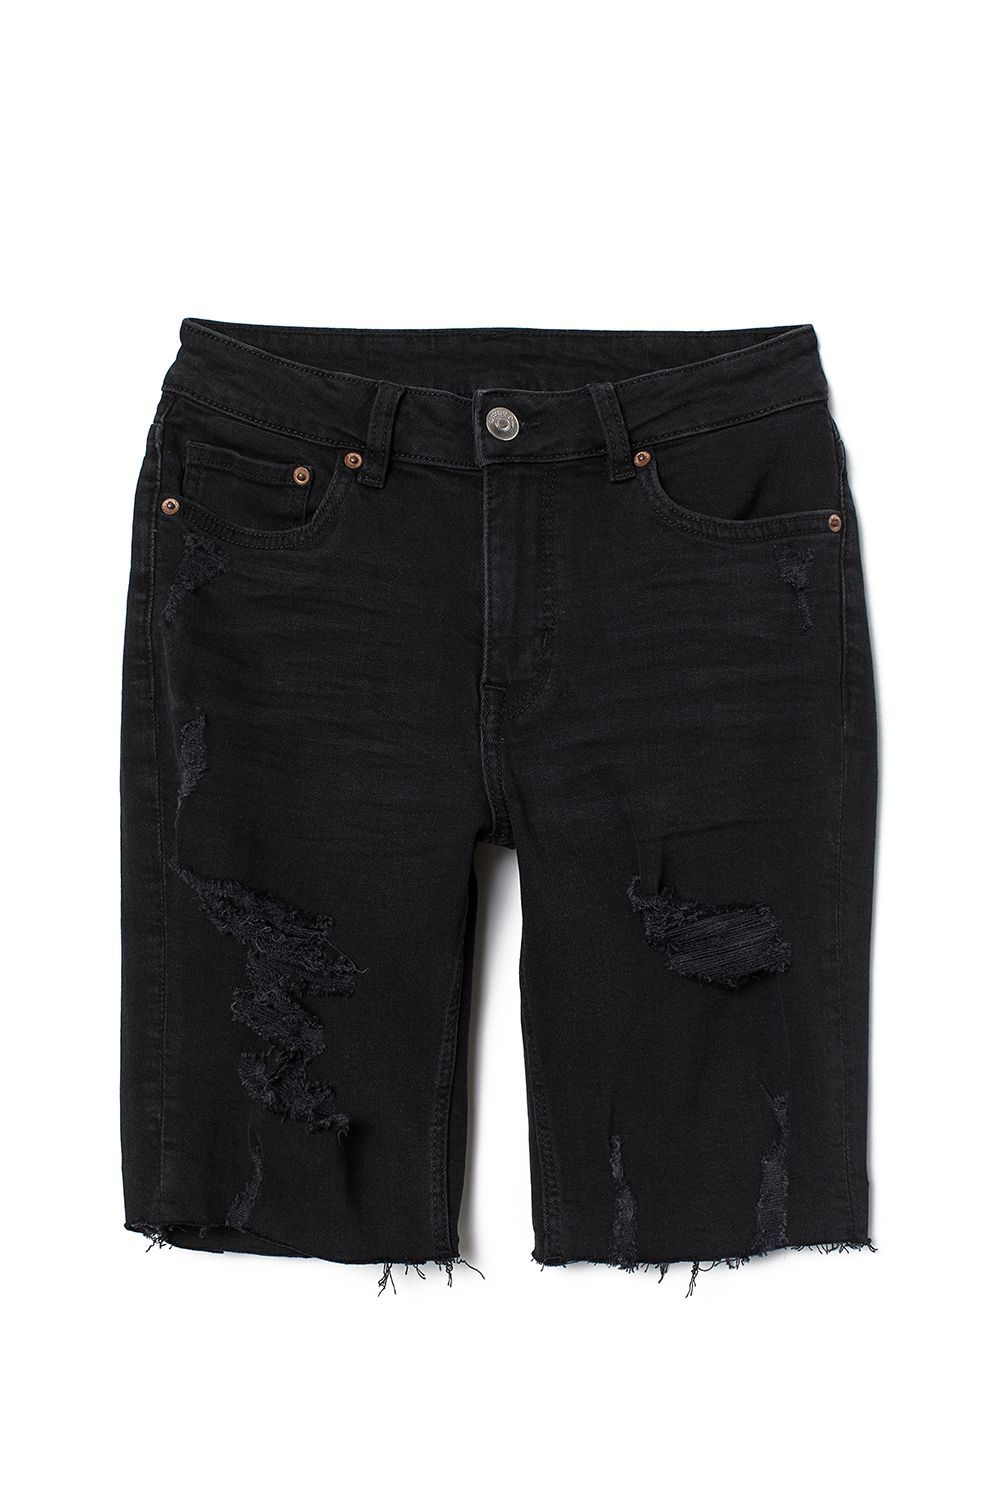 c6ebd5f869 12 Best Denim Shorts of 2019 for Women - Distressed, High Waisted, and More